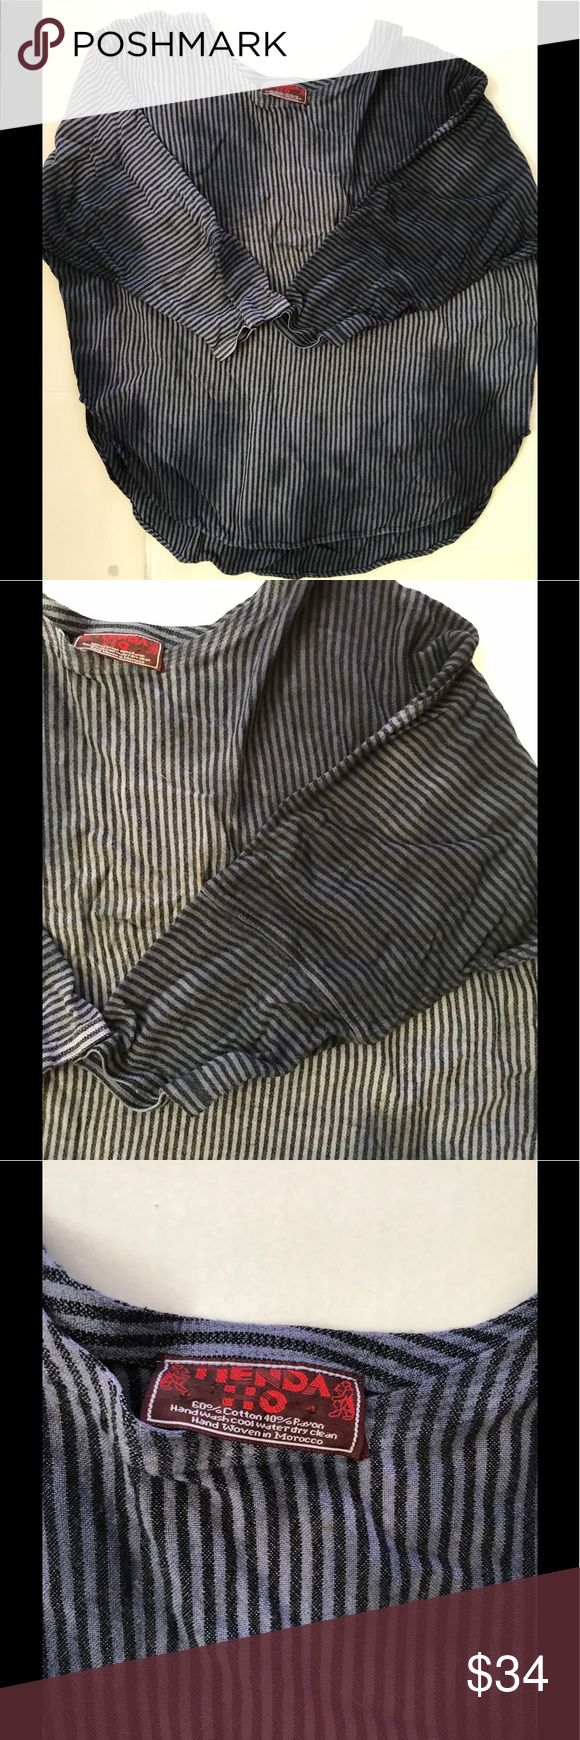 """TIENDA HO Blue Striped Hombre Bat Wing Shirt  M/L TIENDA HO Blue Striped Hombre Bat Wing Shirt Blouse Loose Fit M/L  Because of the style it was hard to measure  top to bottom 24"""" arm pit to arm pit 23 collar to end of sleeve 24  cotton/Rayon blend Tiendo Ho Tops Blouses"""